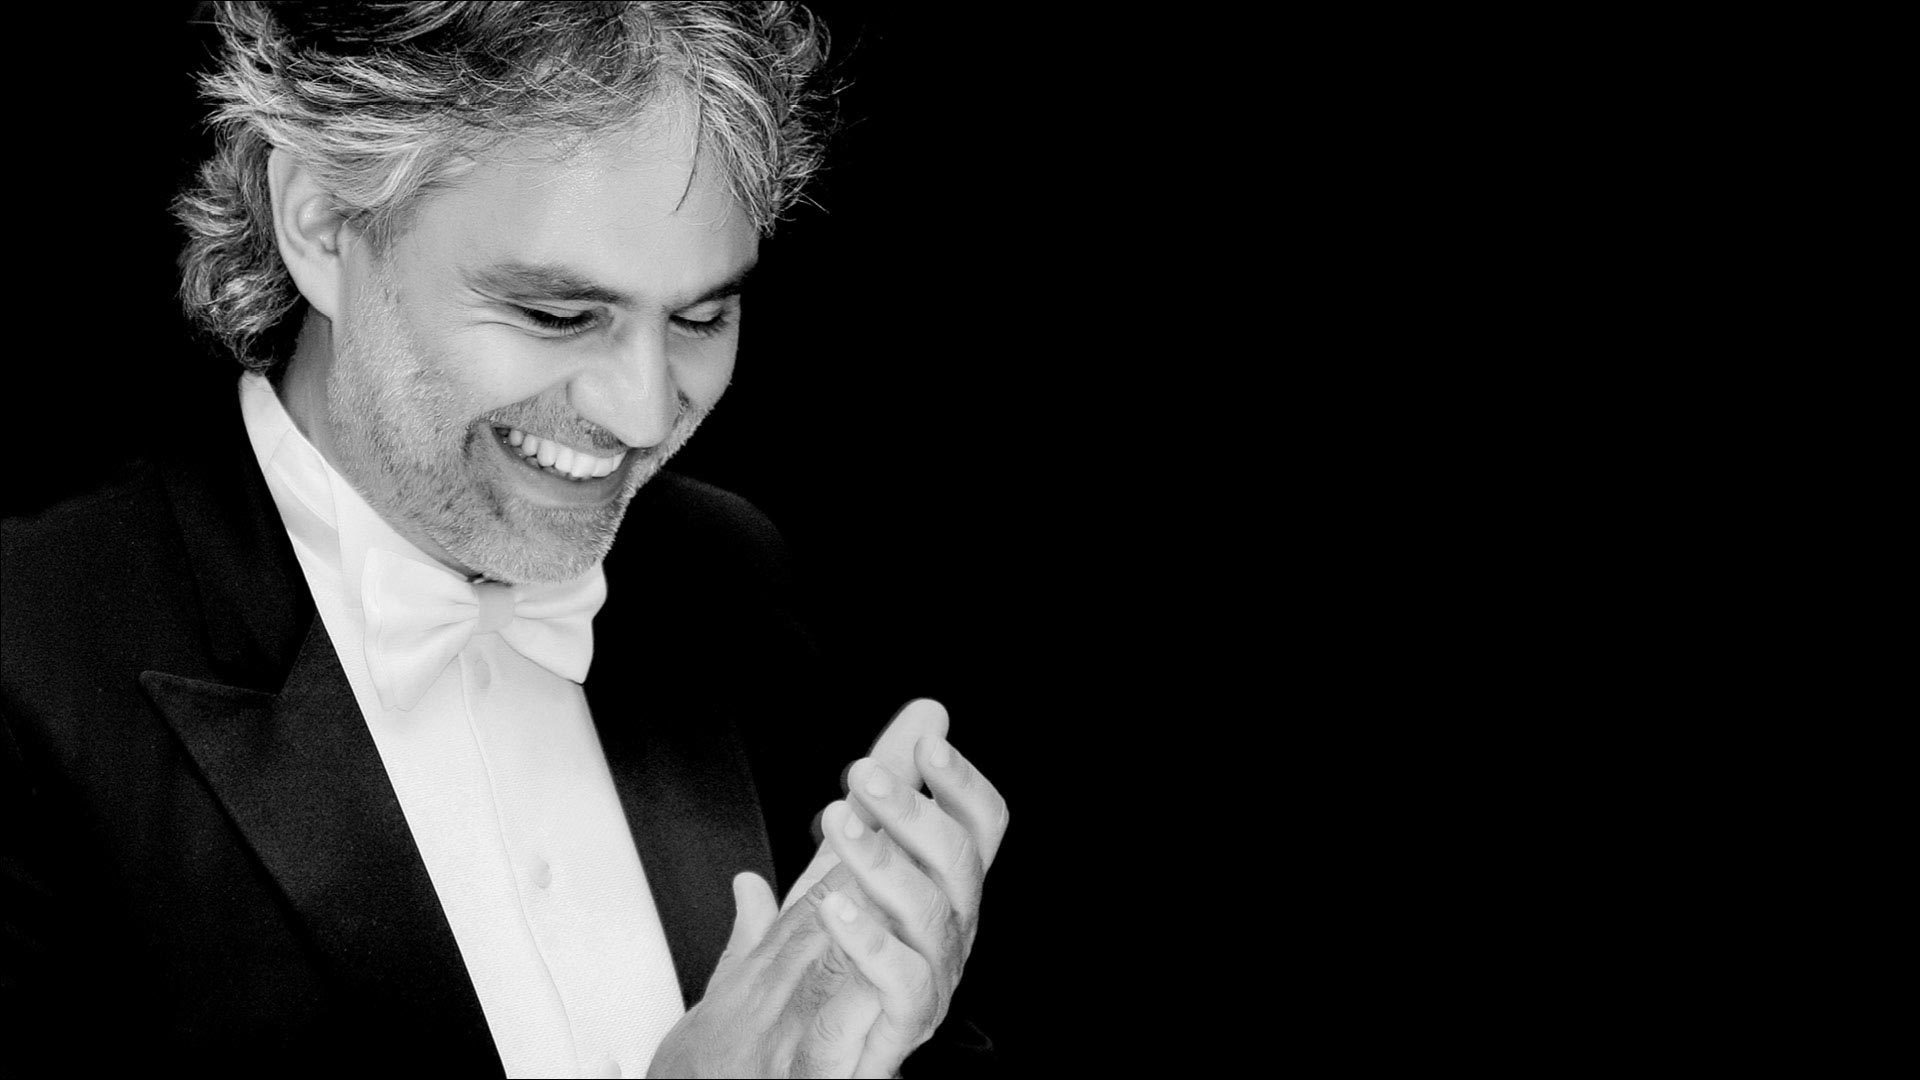 Andrea Bocelli Wallpapers Images Photos Pictures Backgrounds